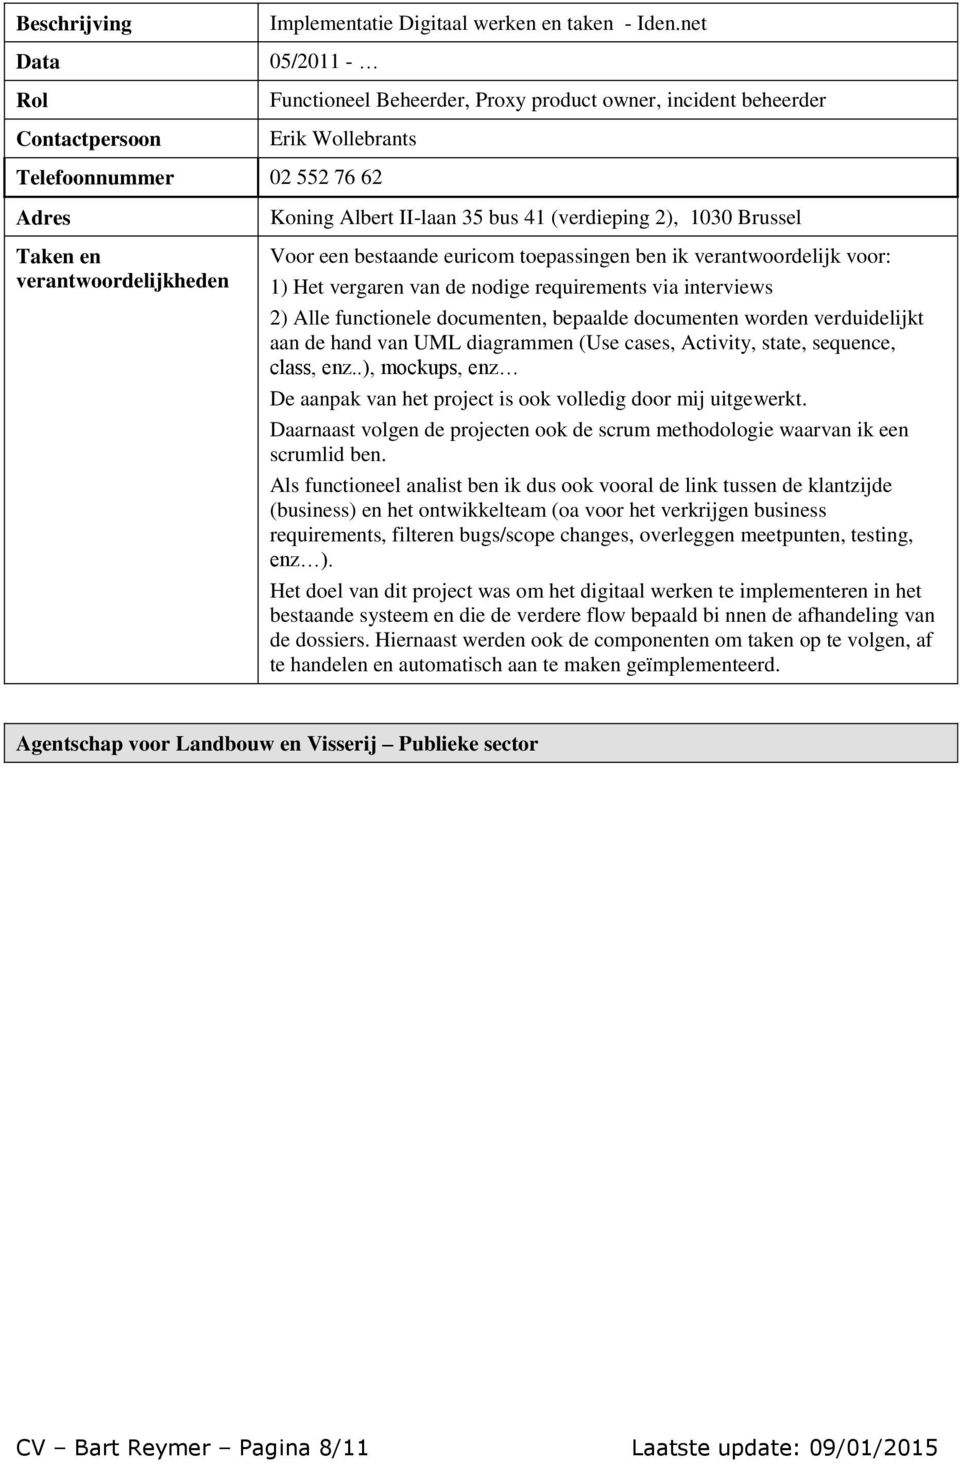 vergaren van de nodige requirements via interviews 2) Alle functionele documenten, bepaalde documenten worden verduidelijkt aan de hand van UML diagrammen (Use cases, Activity, state, sequence,